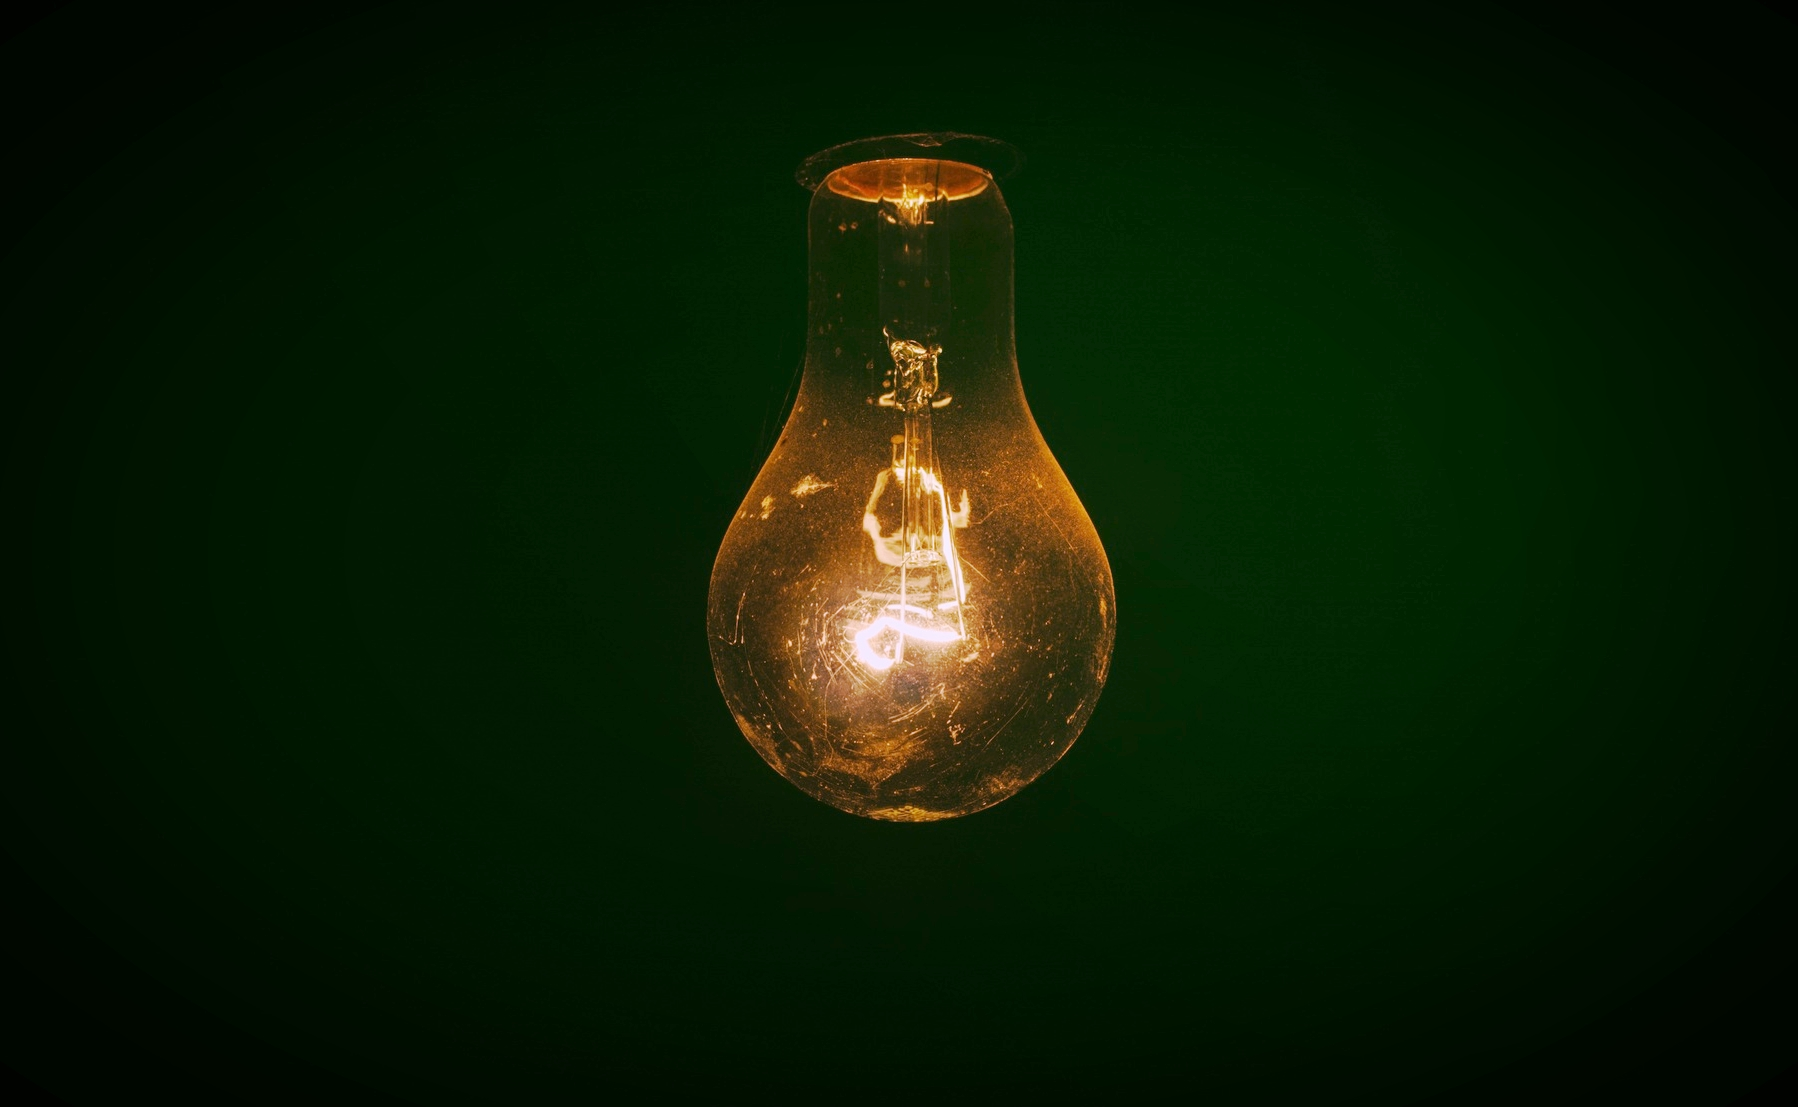 lightbulb large.jpg